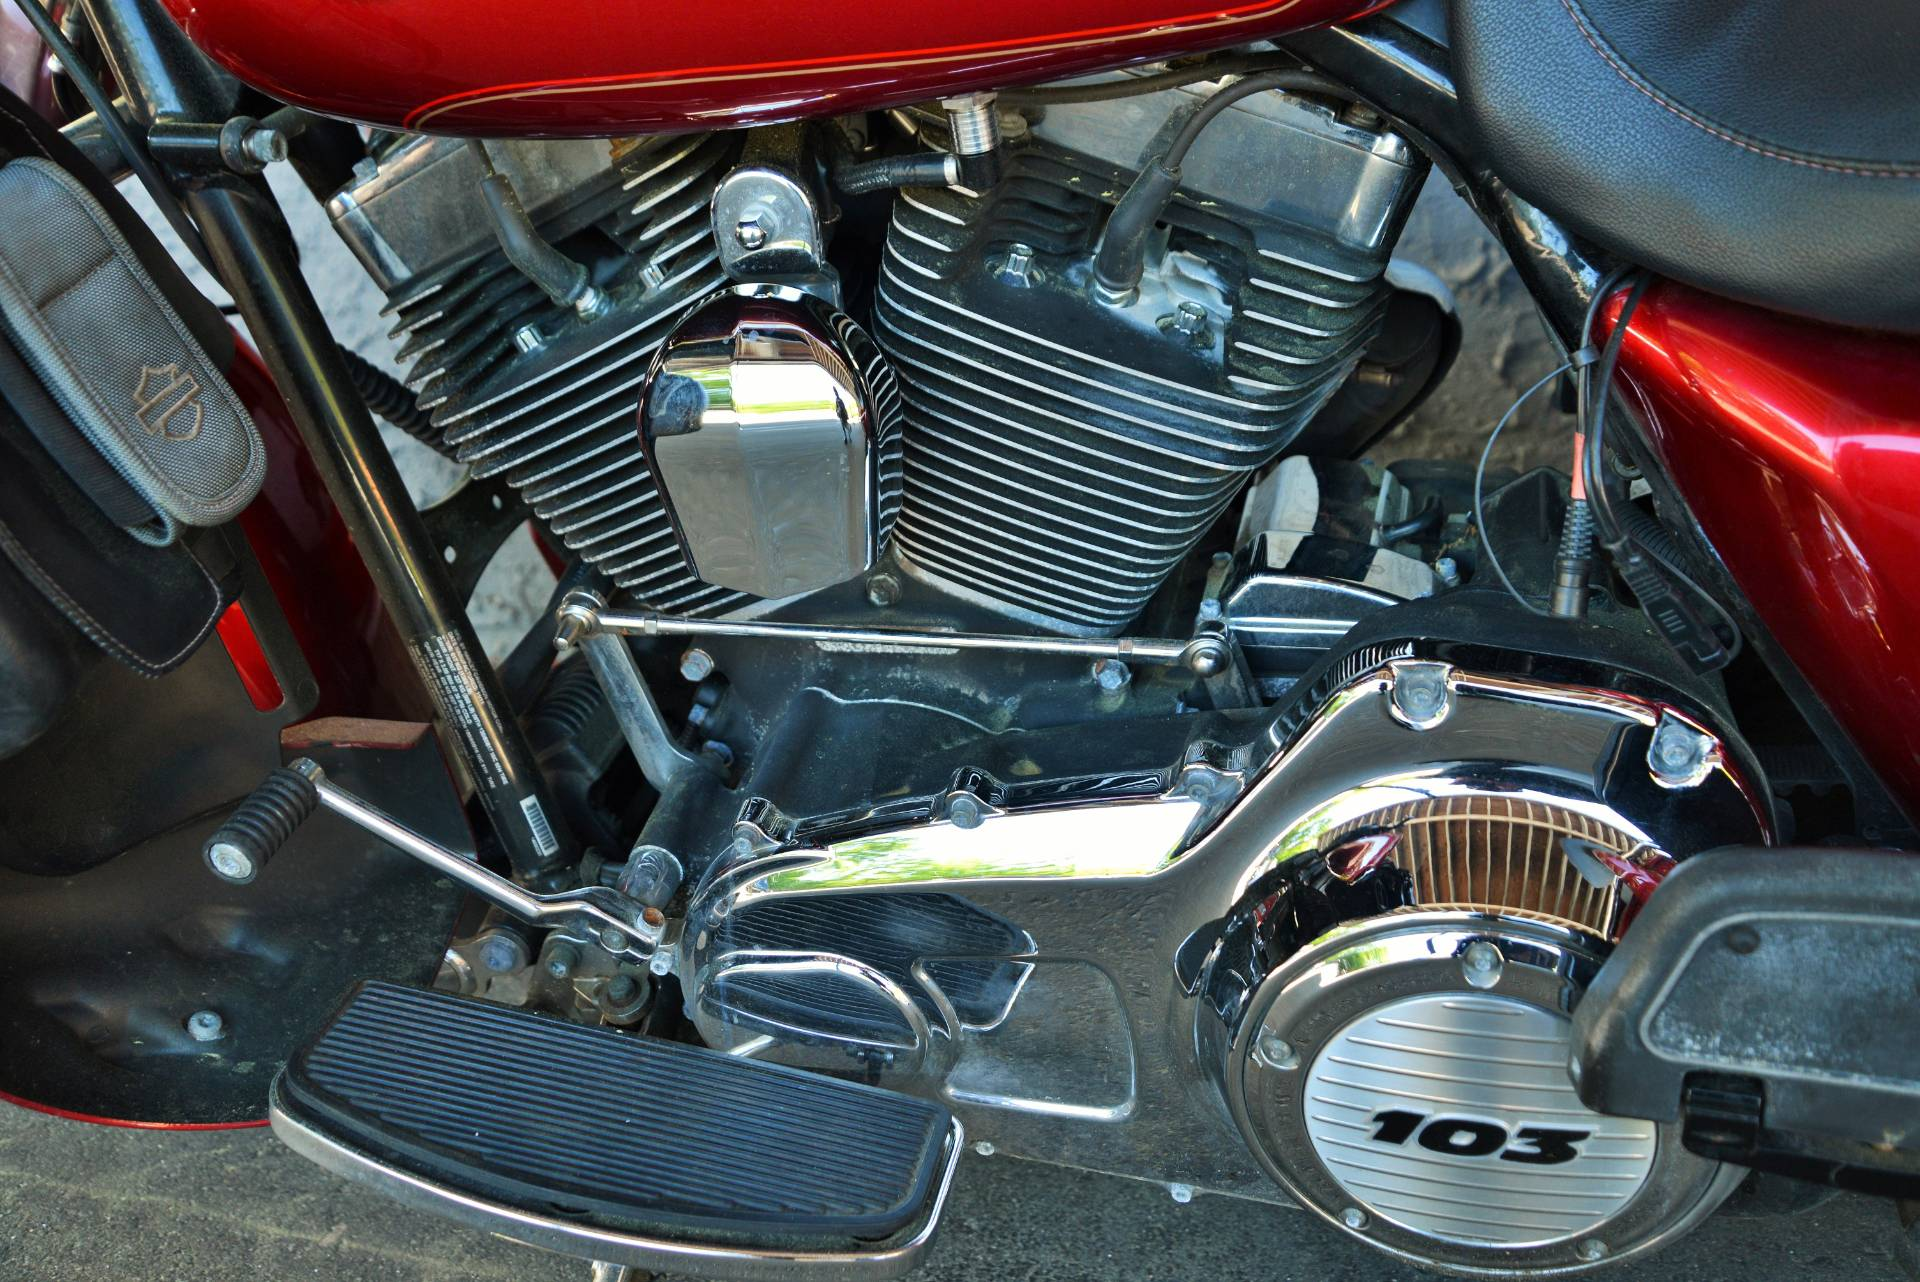 2012 Harley-Davidson ELECTRA GLIDE ULTRA in Lakewood, New Jersey - Photo 17